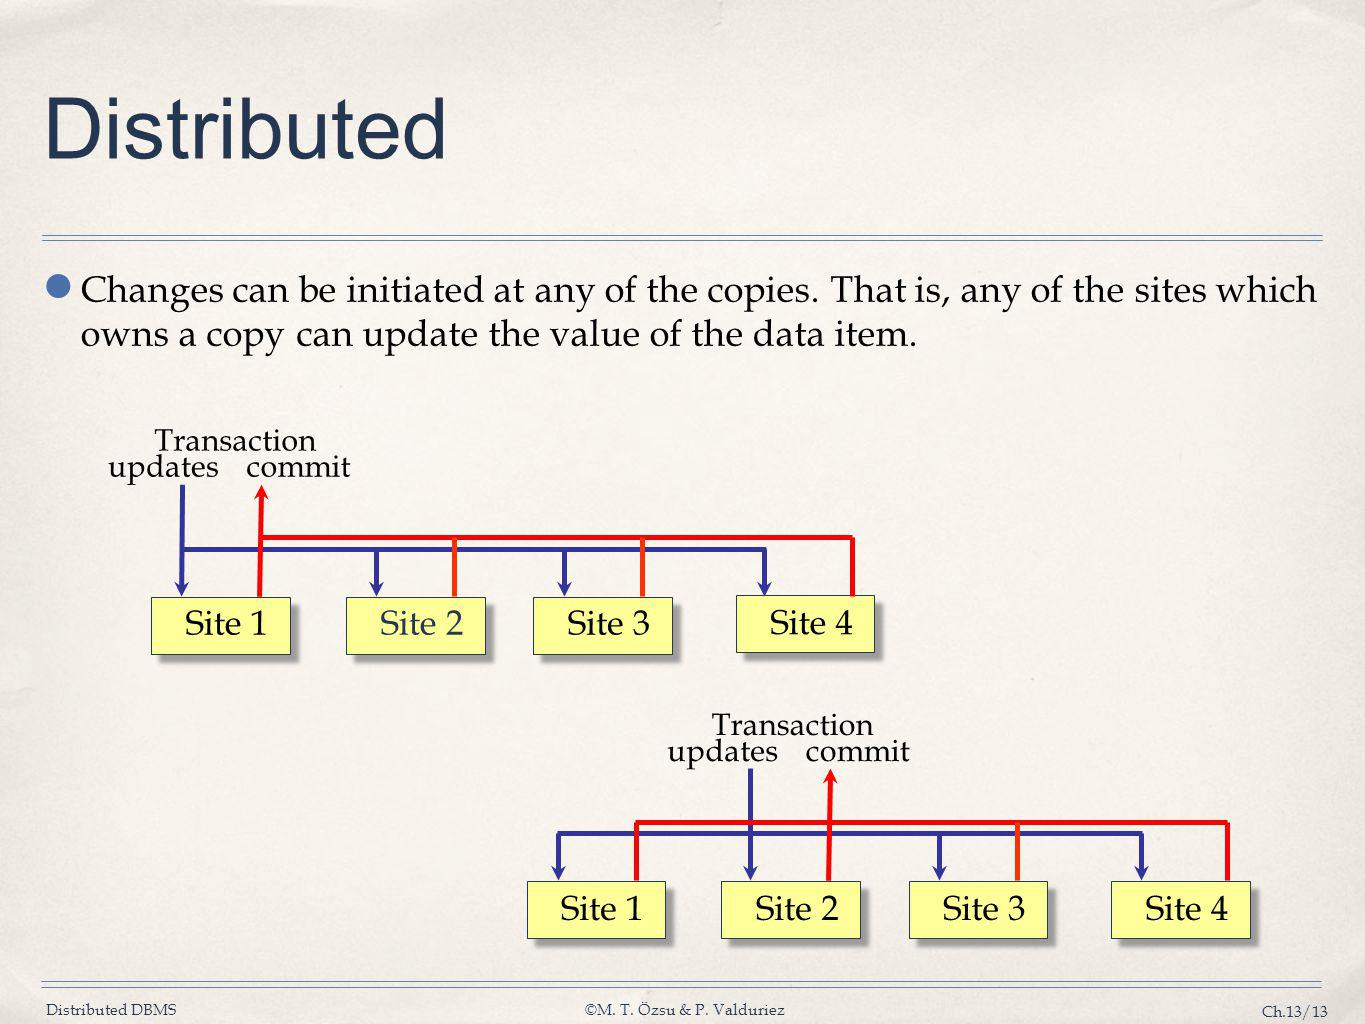 Distributed Changes can be initiated at any of the copies. That is, any of the sites which owns a copy can update the value of the data item.